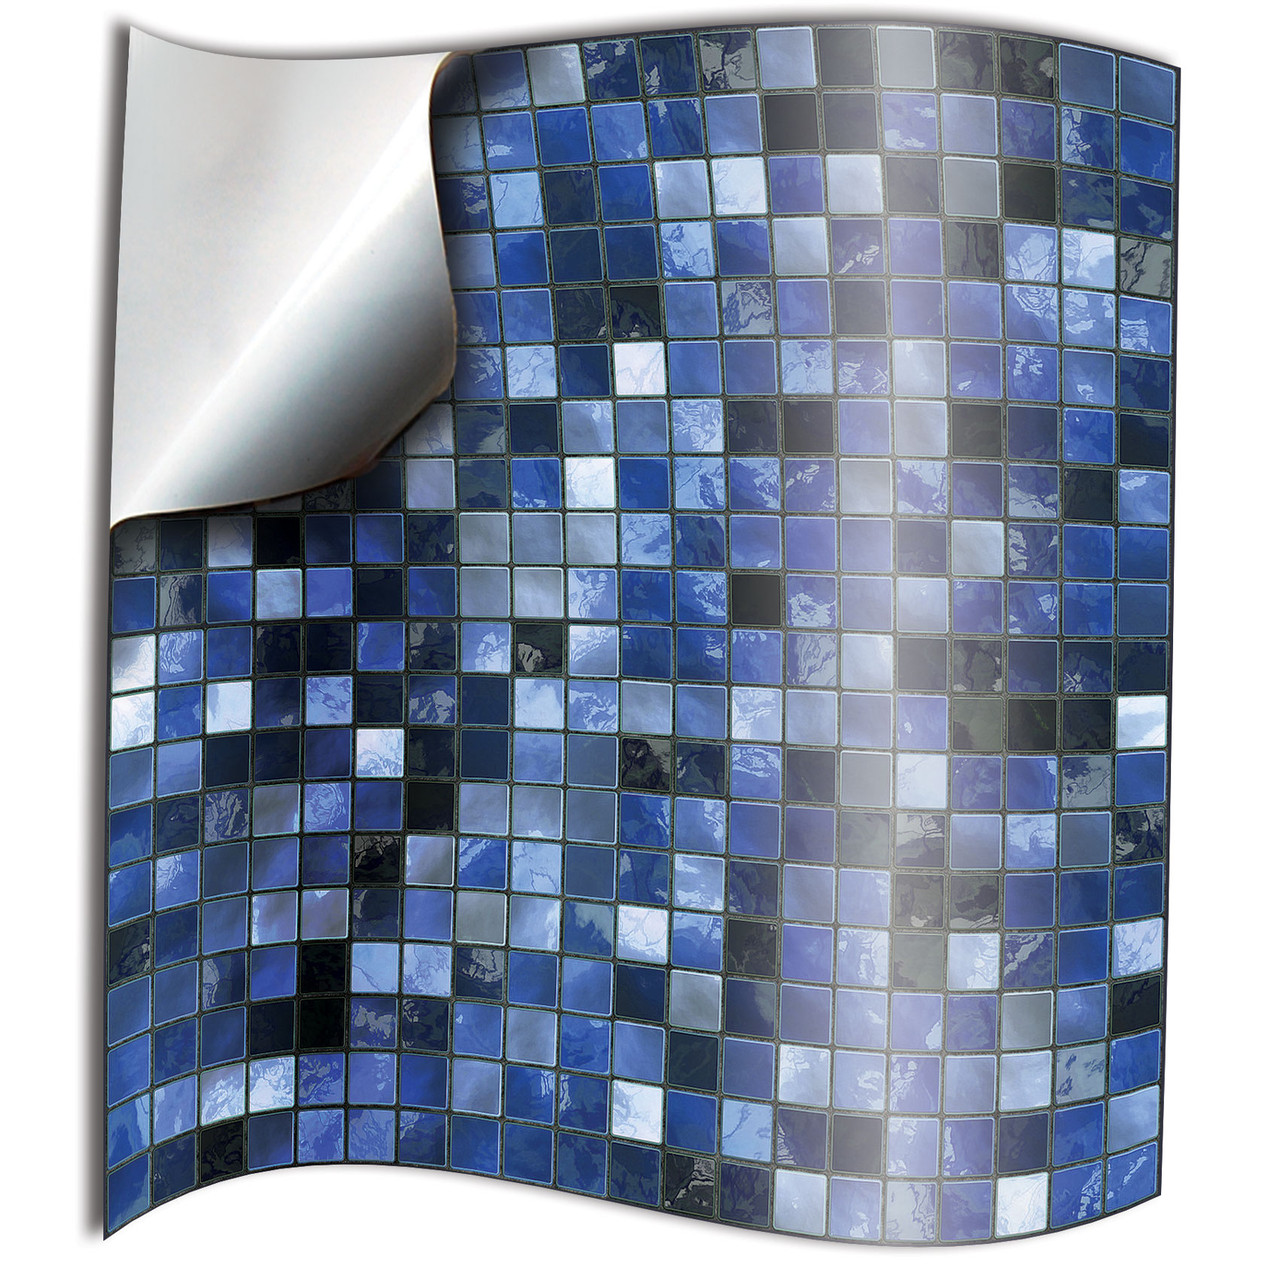 24 Blue Mosaic Bathroom Tile Stickers 6x6 Inch Kitchen Bathroom Waterproof Removable Tile Style Decals